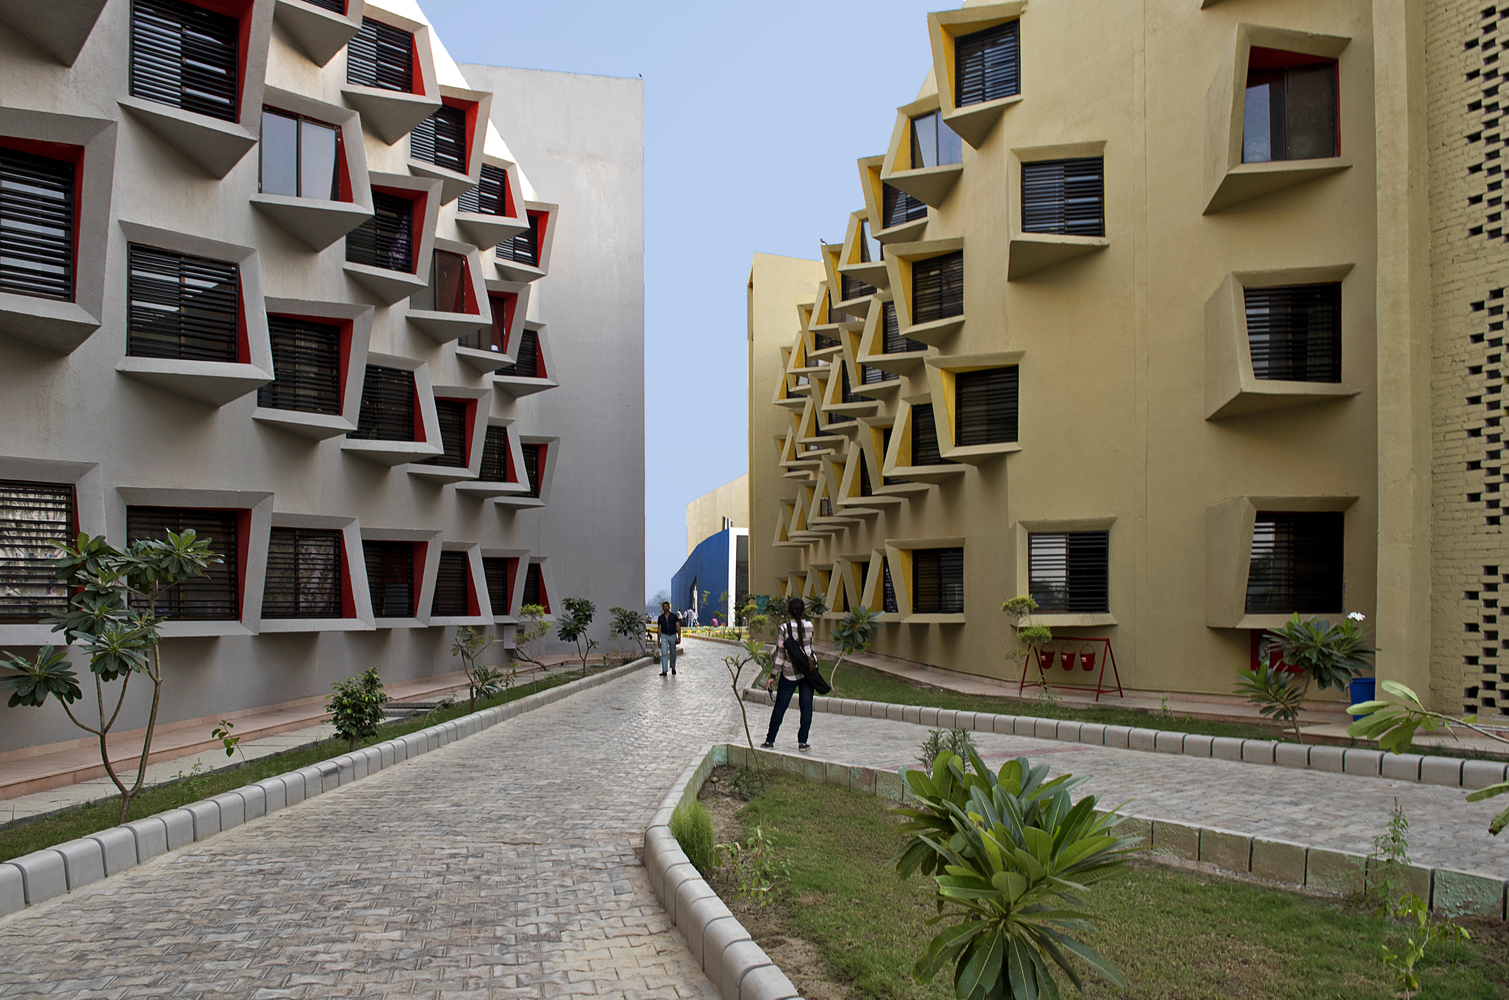 The Street By Sanjay Puri Architects - Archiscene